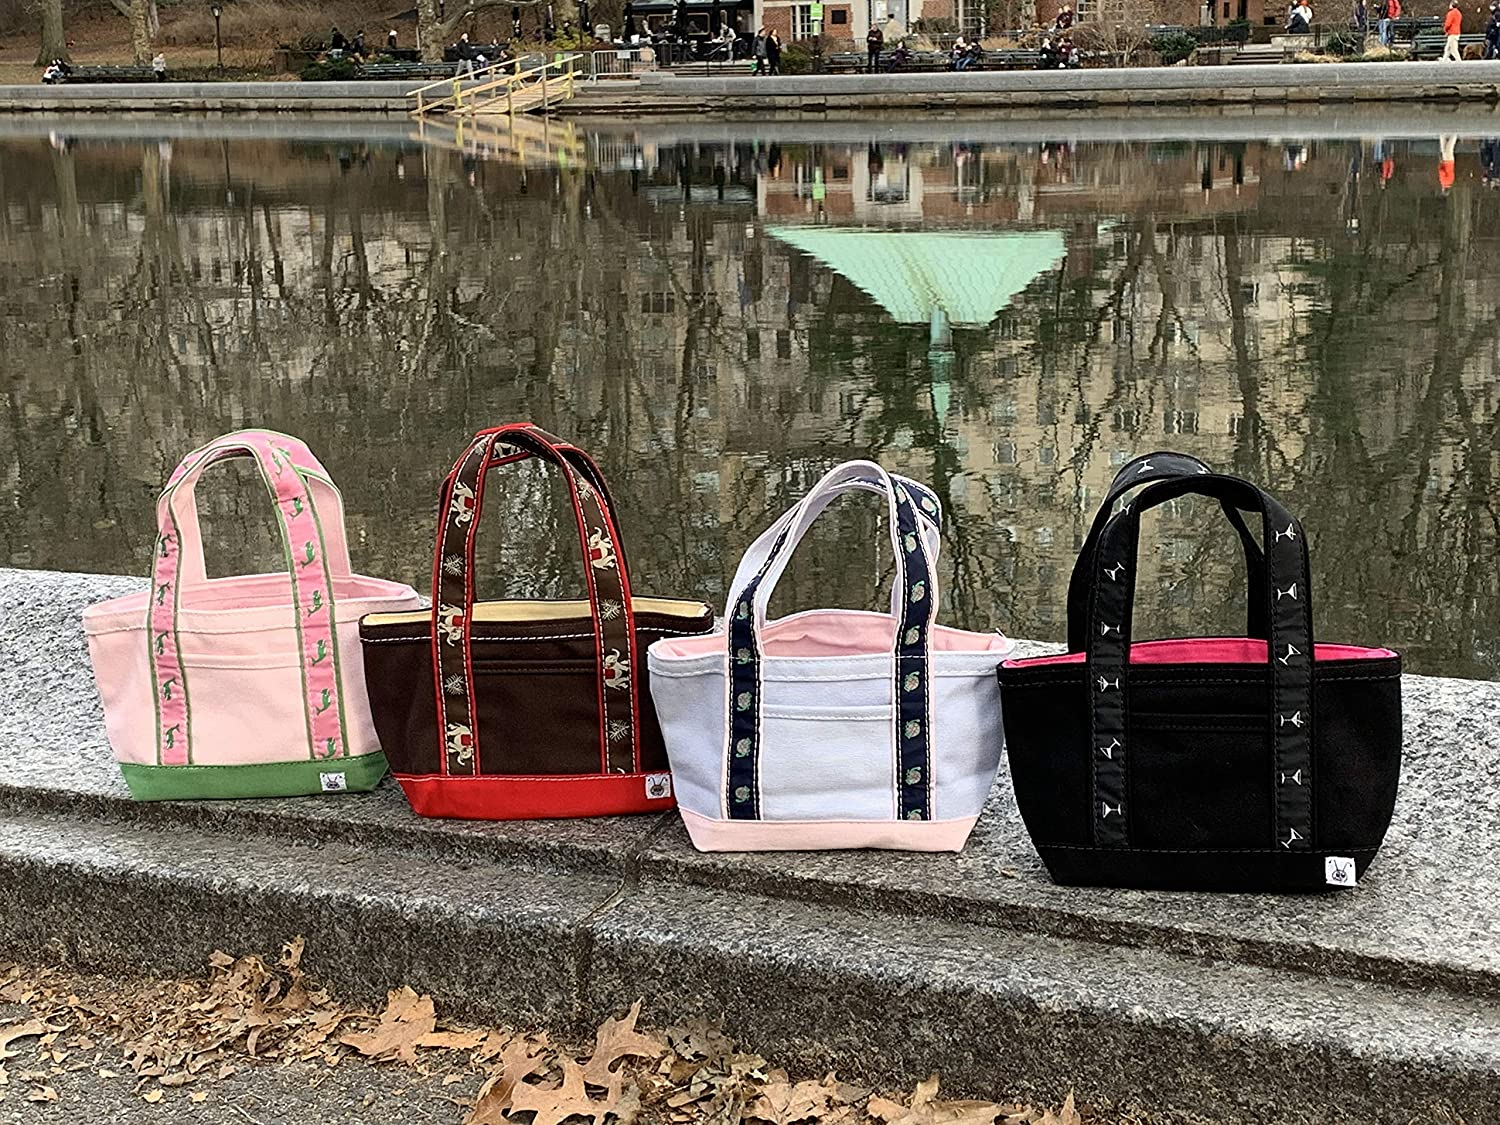 Bugface Belts Max 89% OFF NYC - Preppy 25% OFF Tote Clutch Saltaire